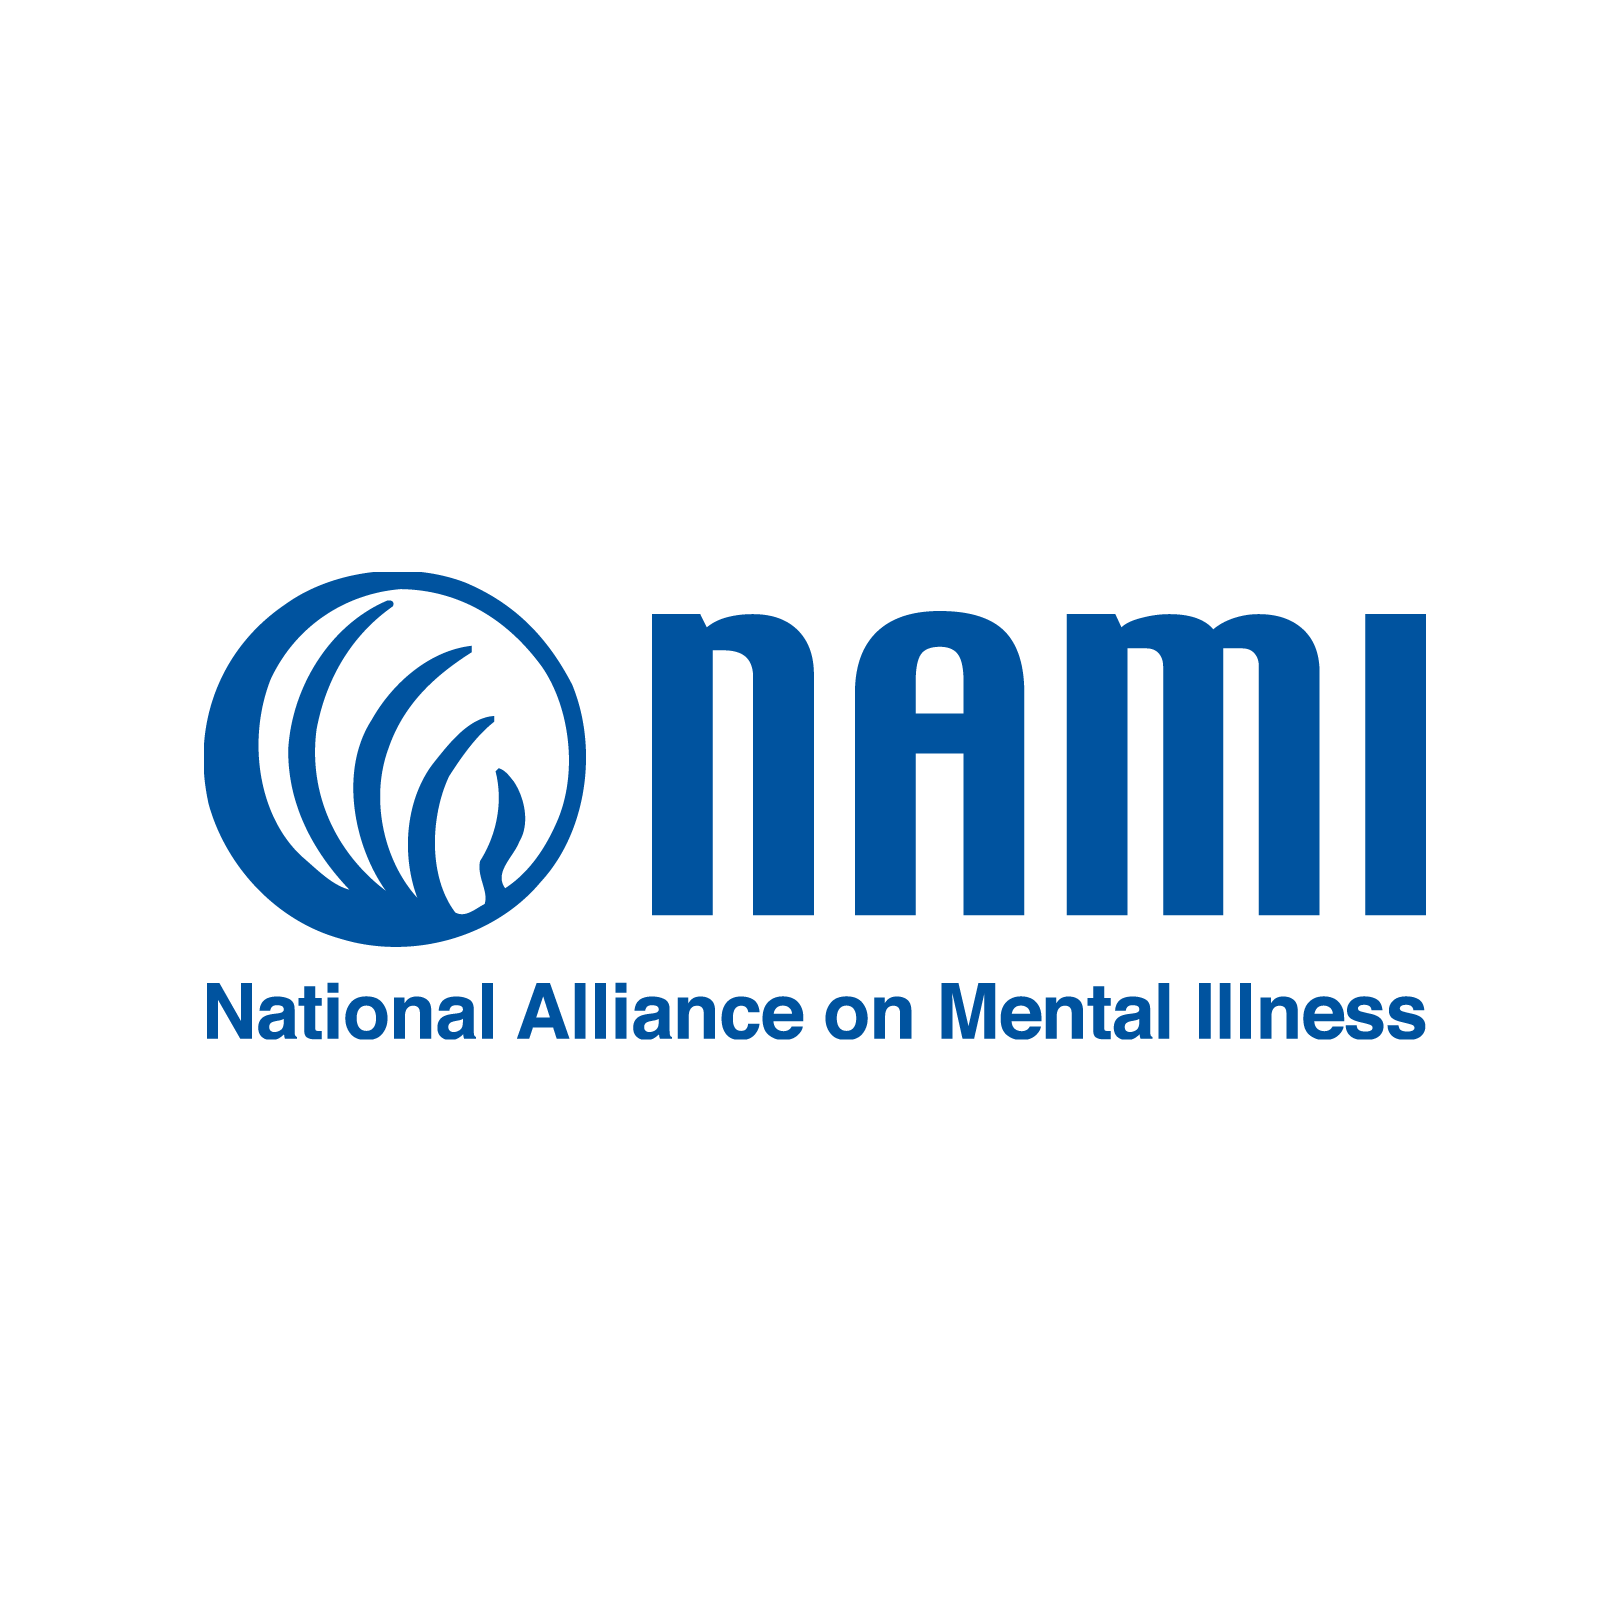 National Alliance on Mental Illness (NAMI.org) MH Stats